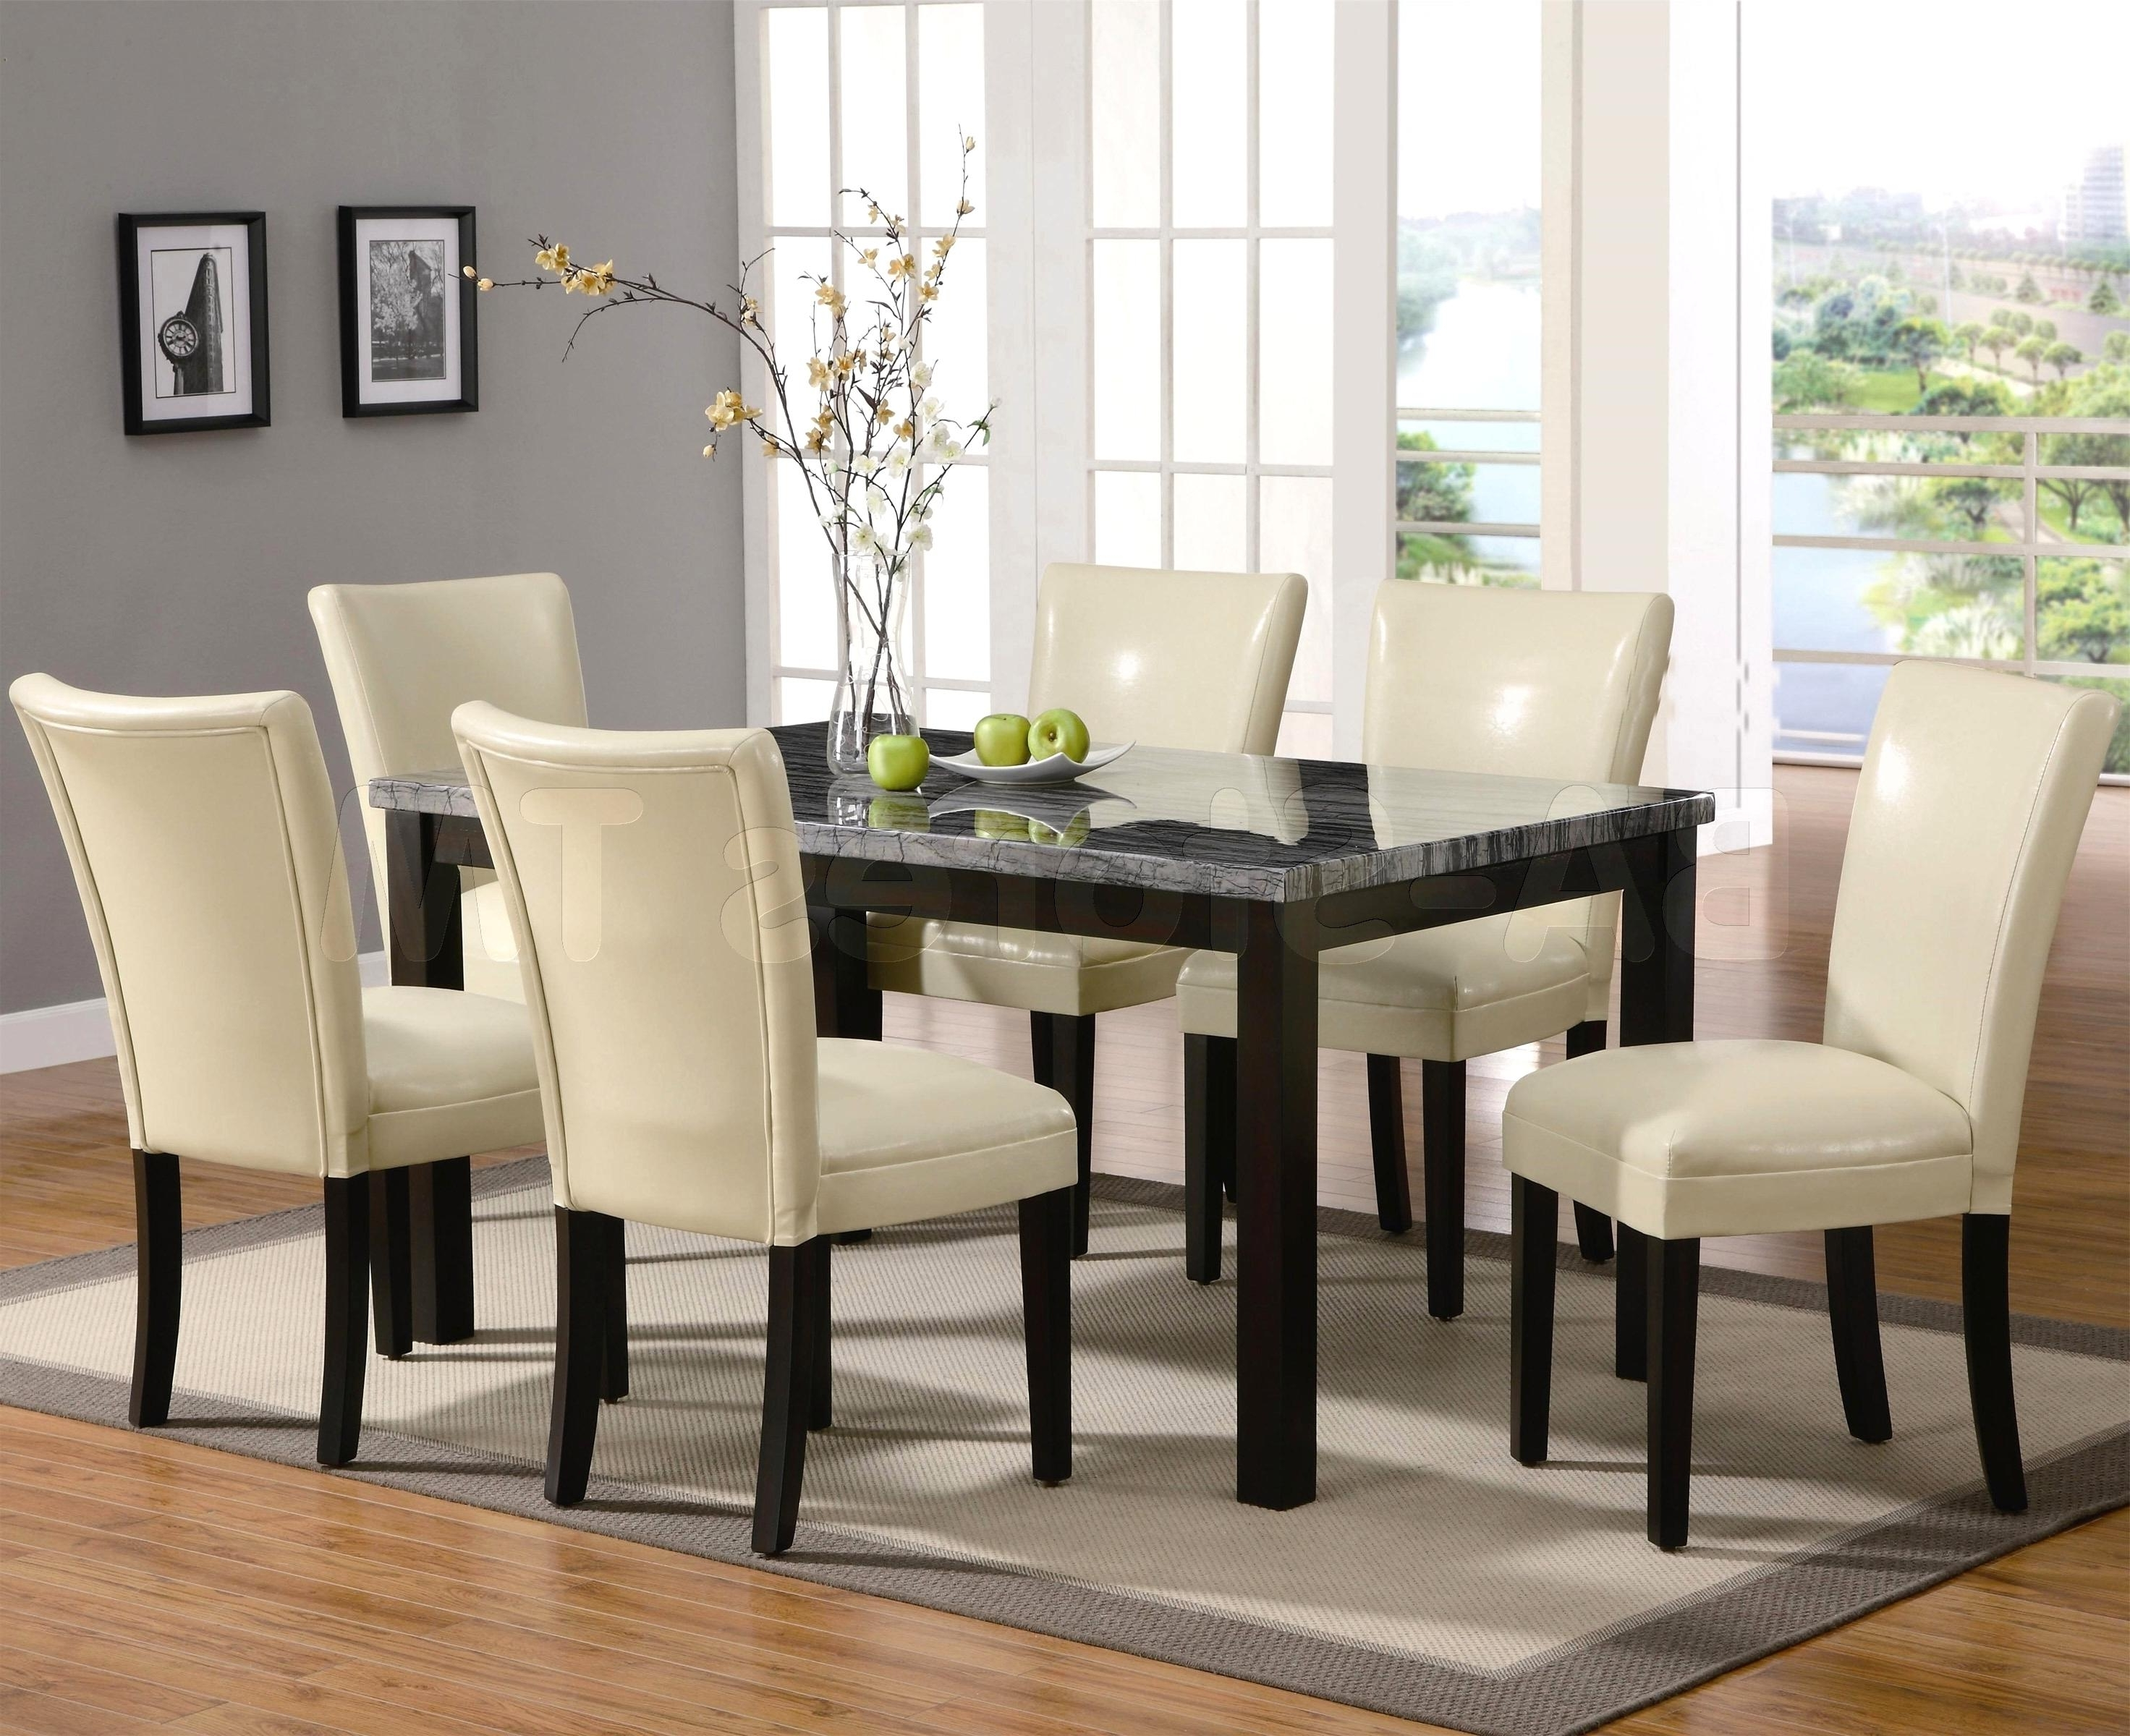 Recent Charming Cream Dining Tables Chairs Luxurius Home Quality Dining Throughout Cream Dining Tables And Chairs (View 17 of 25)